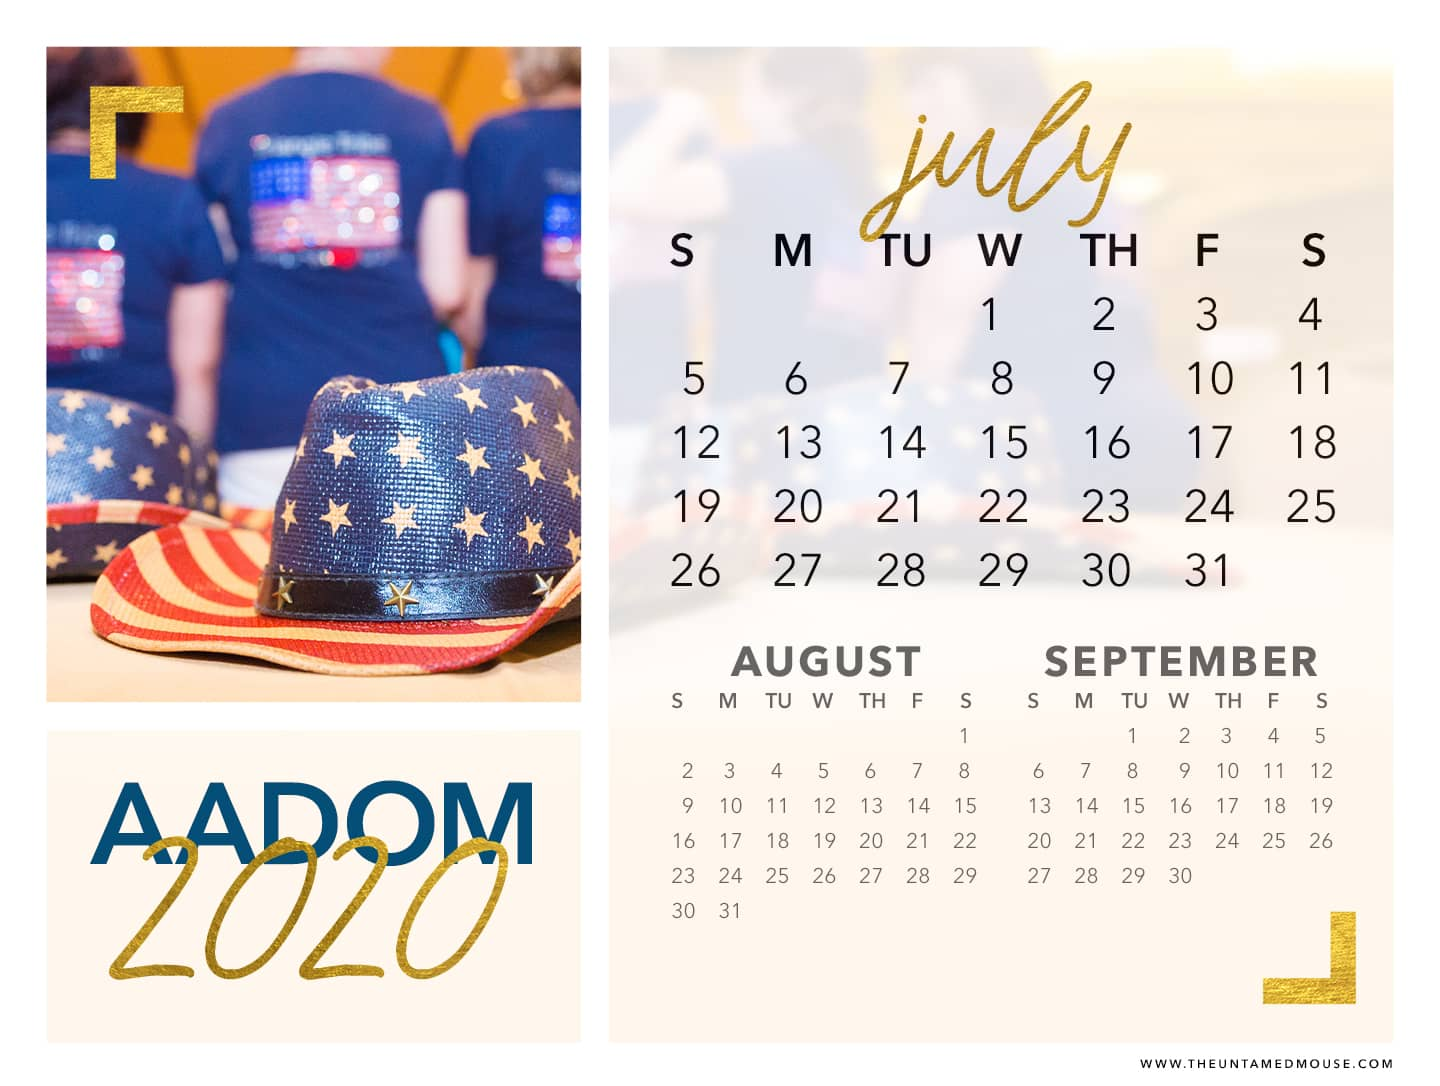 July calendar from AADOM - Read our blog post on why I bleed red, white and blue